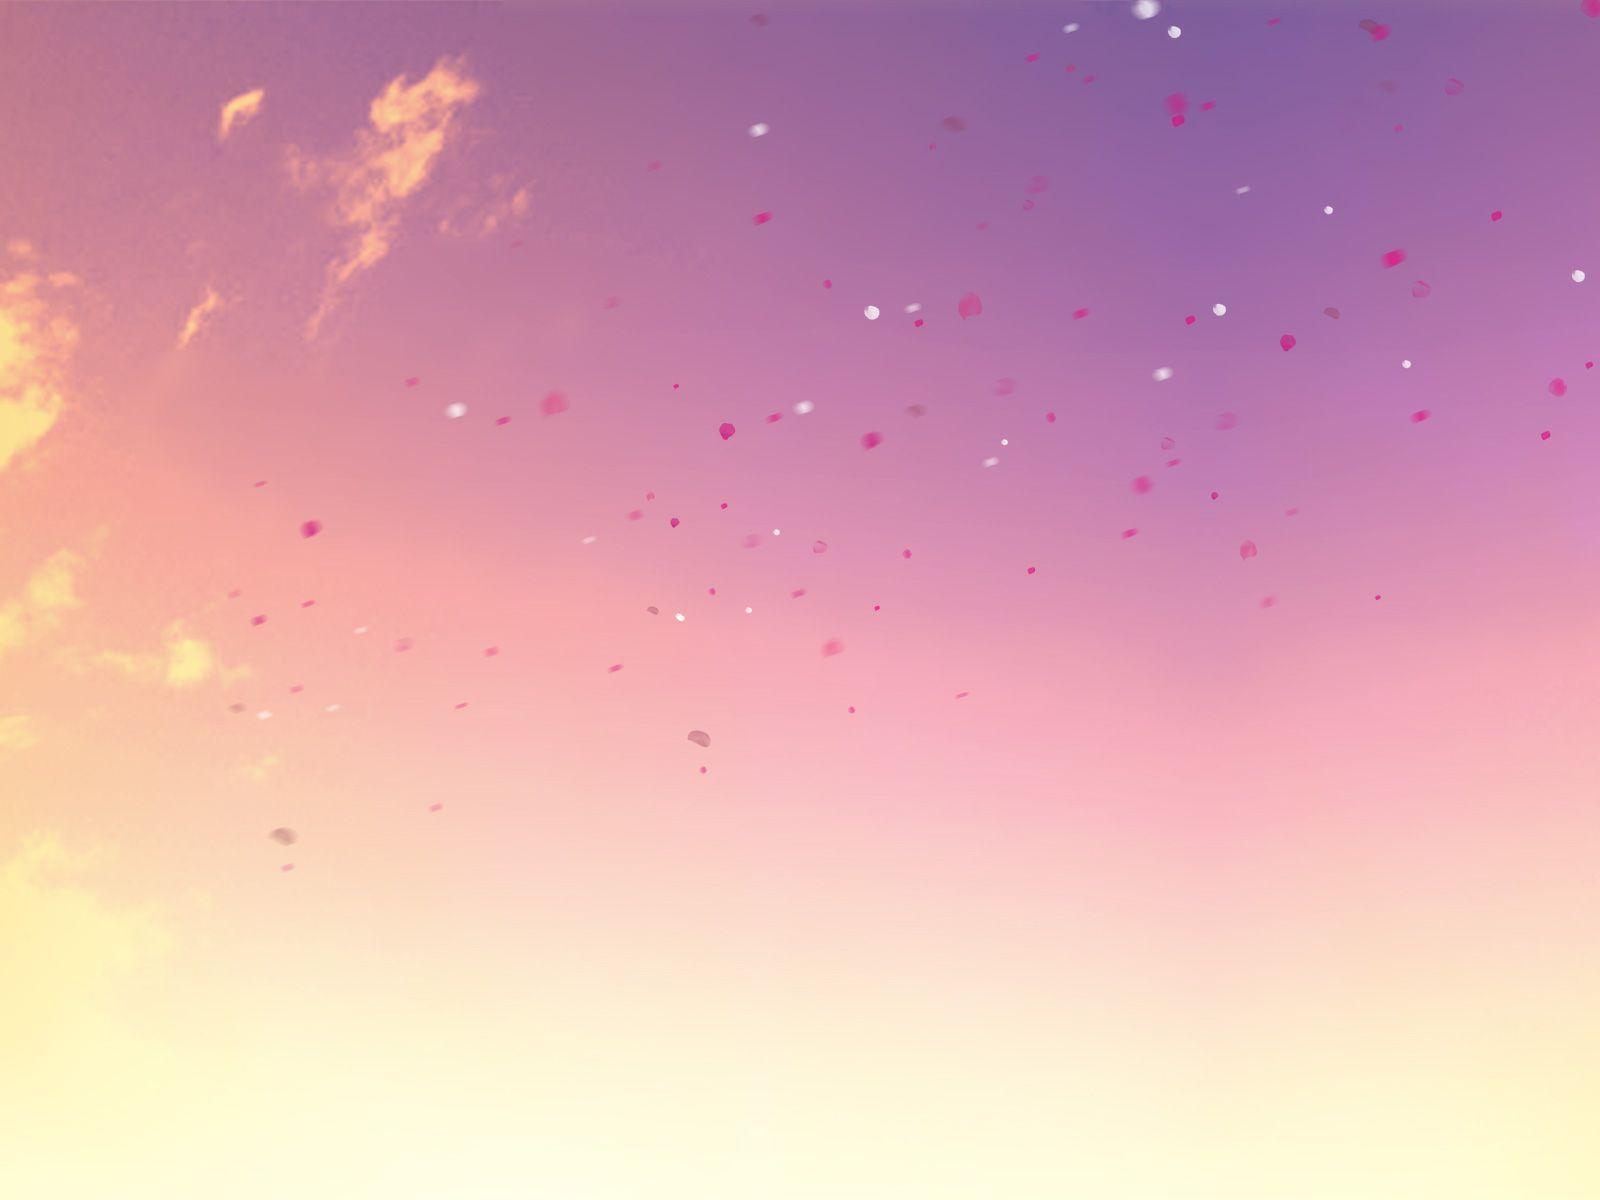 pastel desktop wallpaper - photo #5